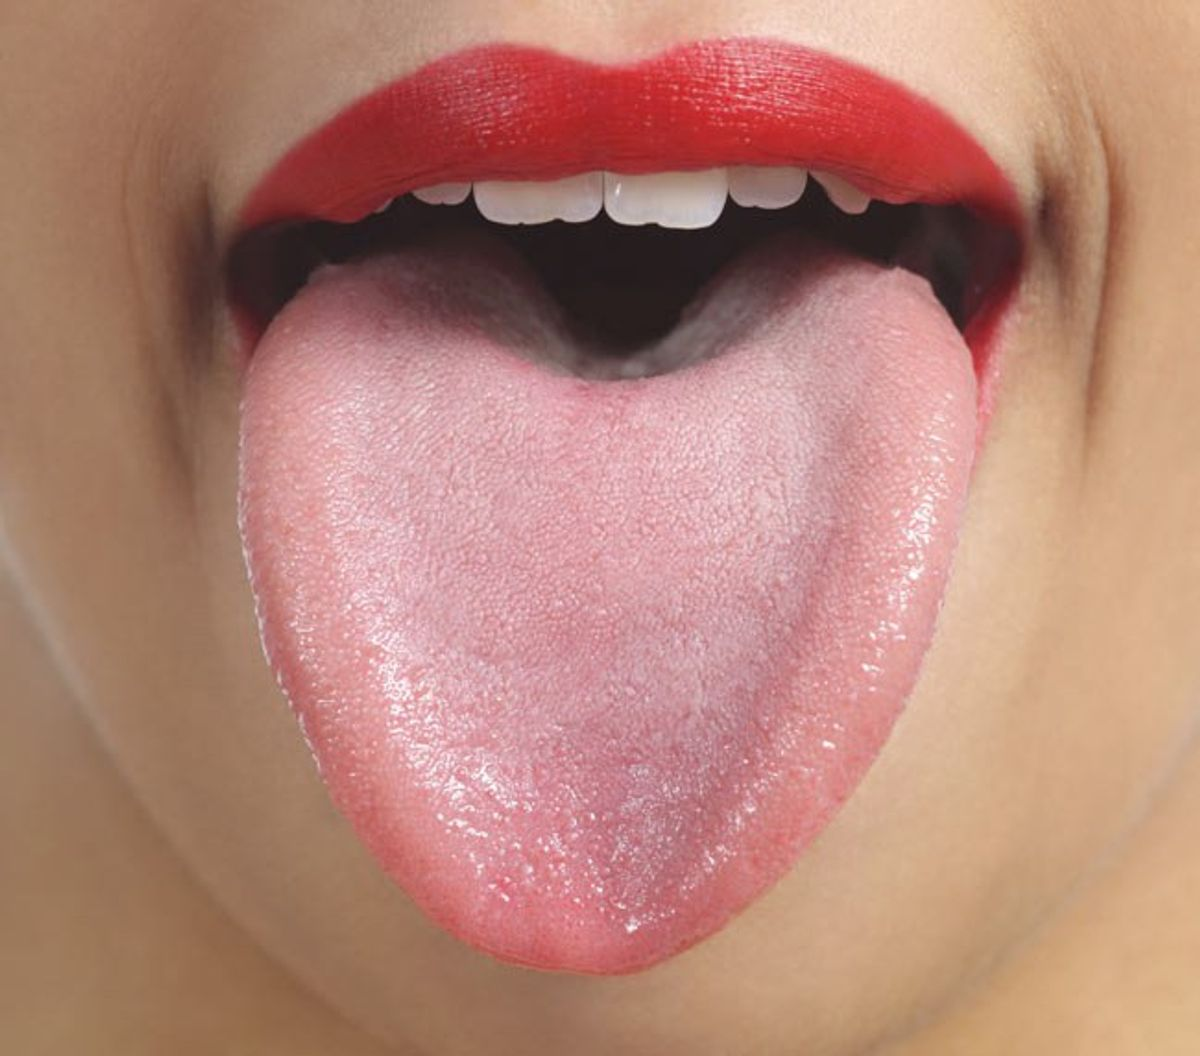 Living With Geographic Tongue